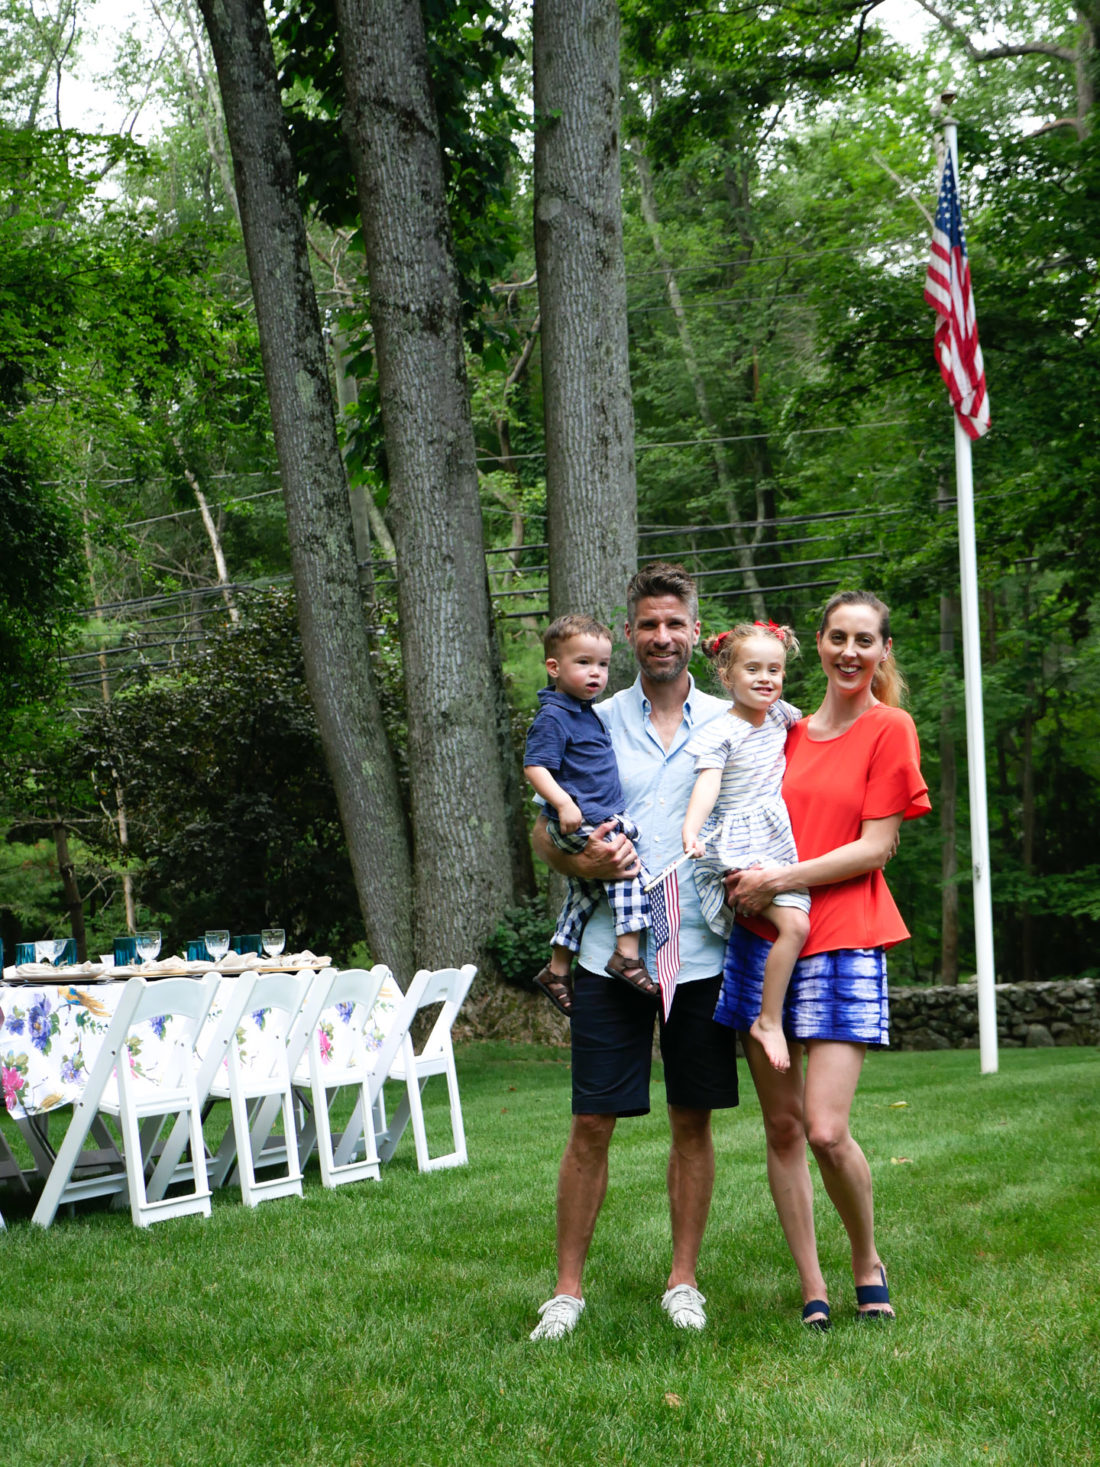 EvaAmurri Martino, Kyle Martino, Marlowe Martino, and Major Martino post together at a family fourth of july party wearing red white and blue